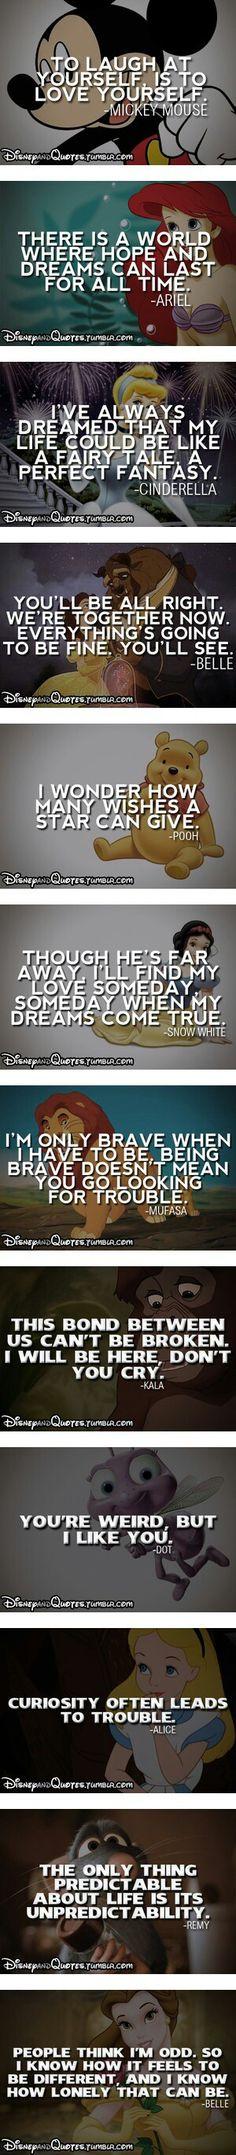 Disney taught us alot